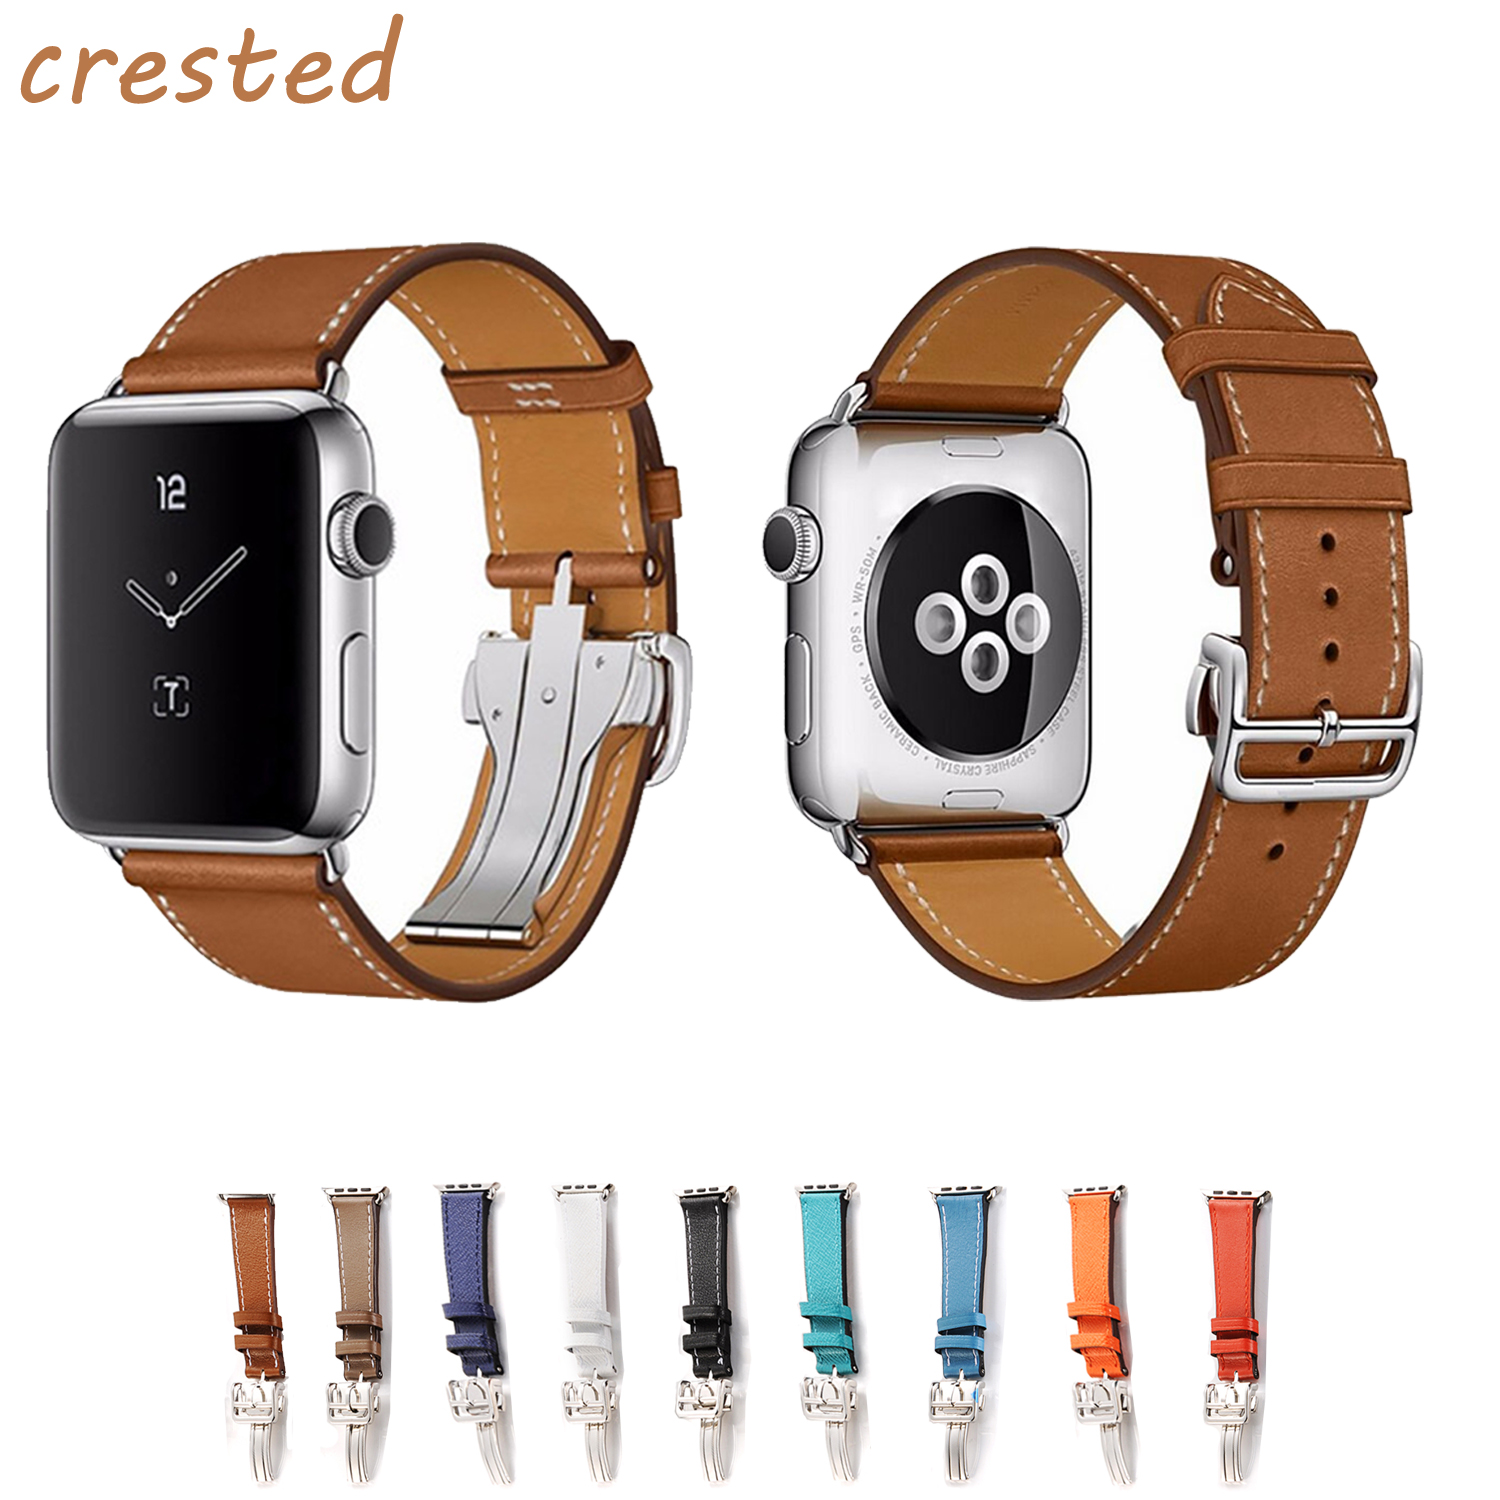 купить Genuine leather strap for apple watch band 42mm/38 bracelet metal buckle band belt for iwatch 1/2/3 Replaceable strap по цене 1053.85 рублей